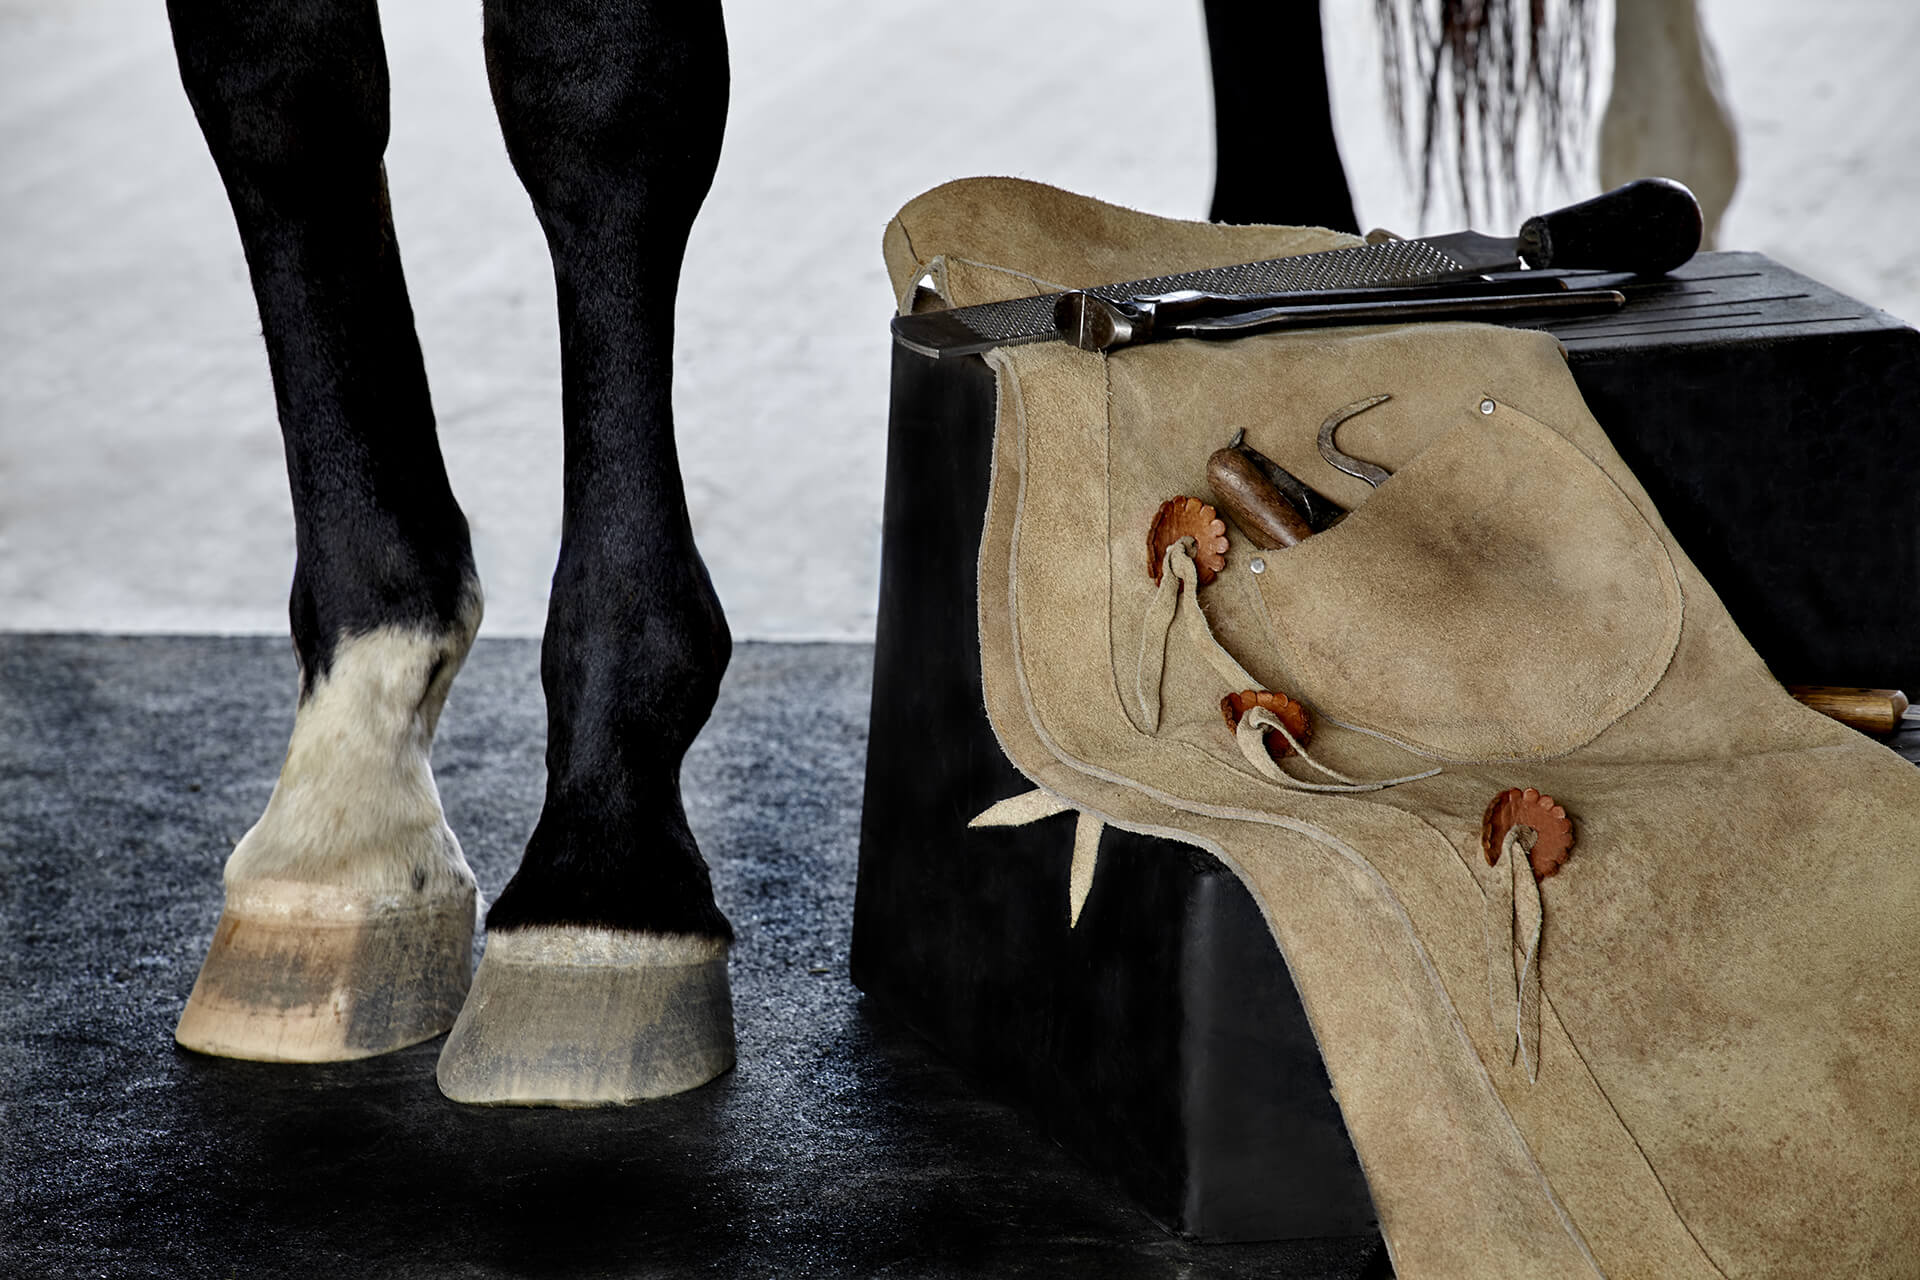 horse hooves and farrier items